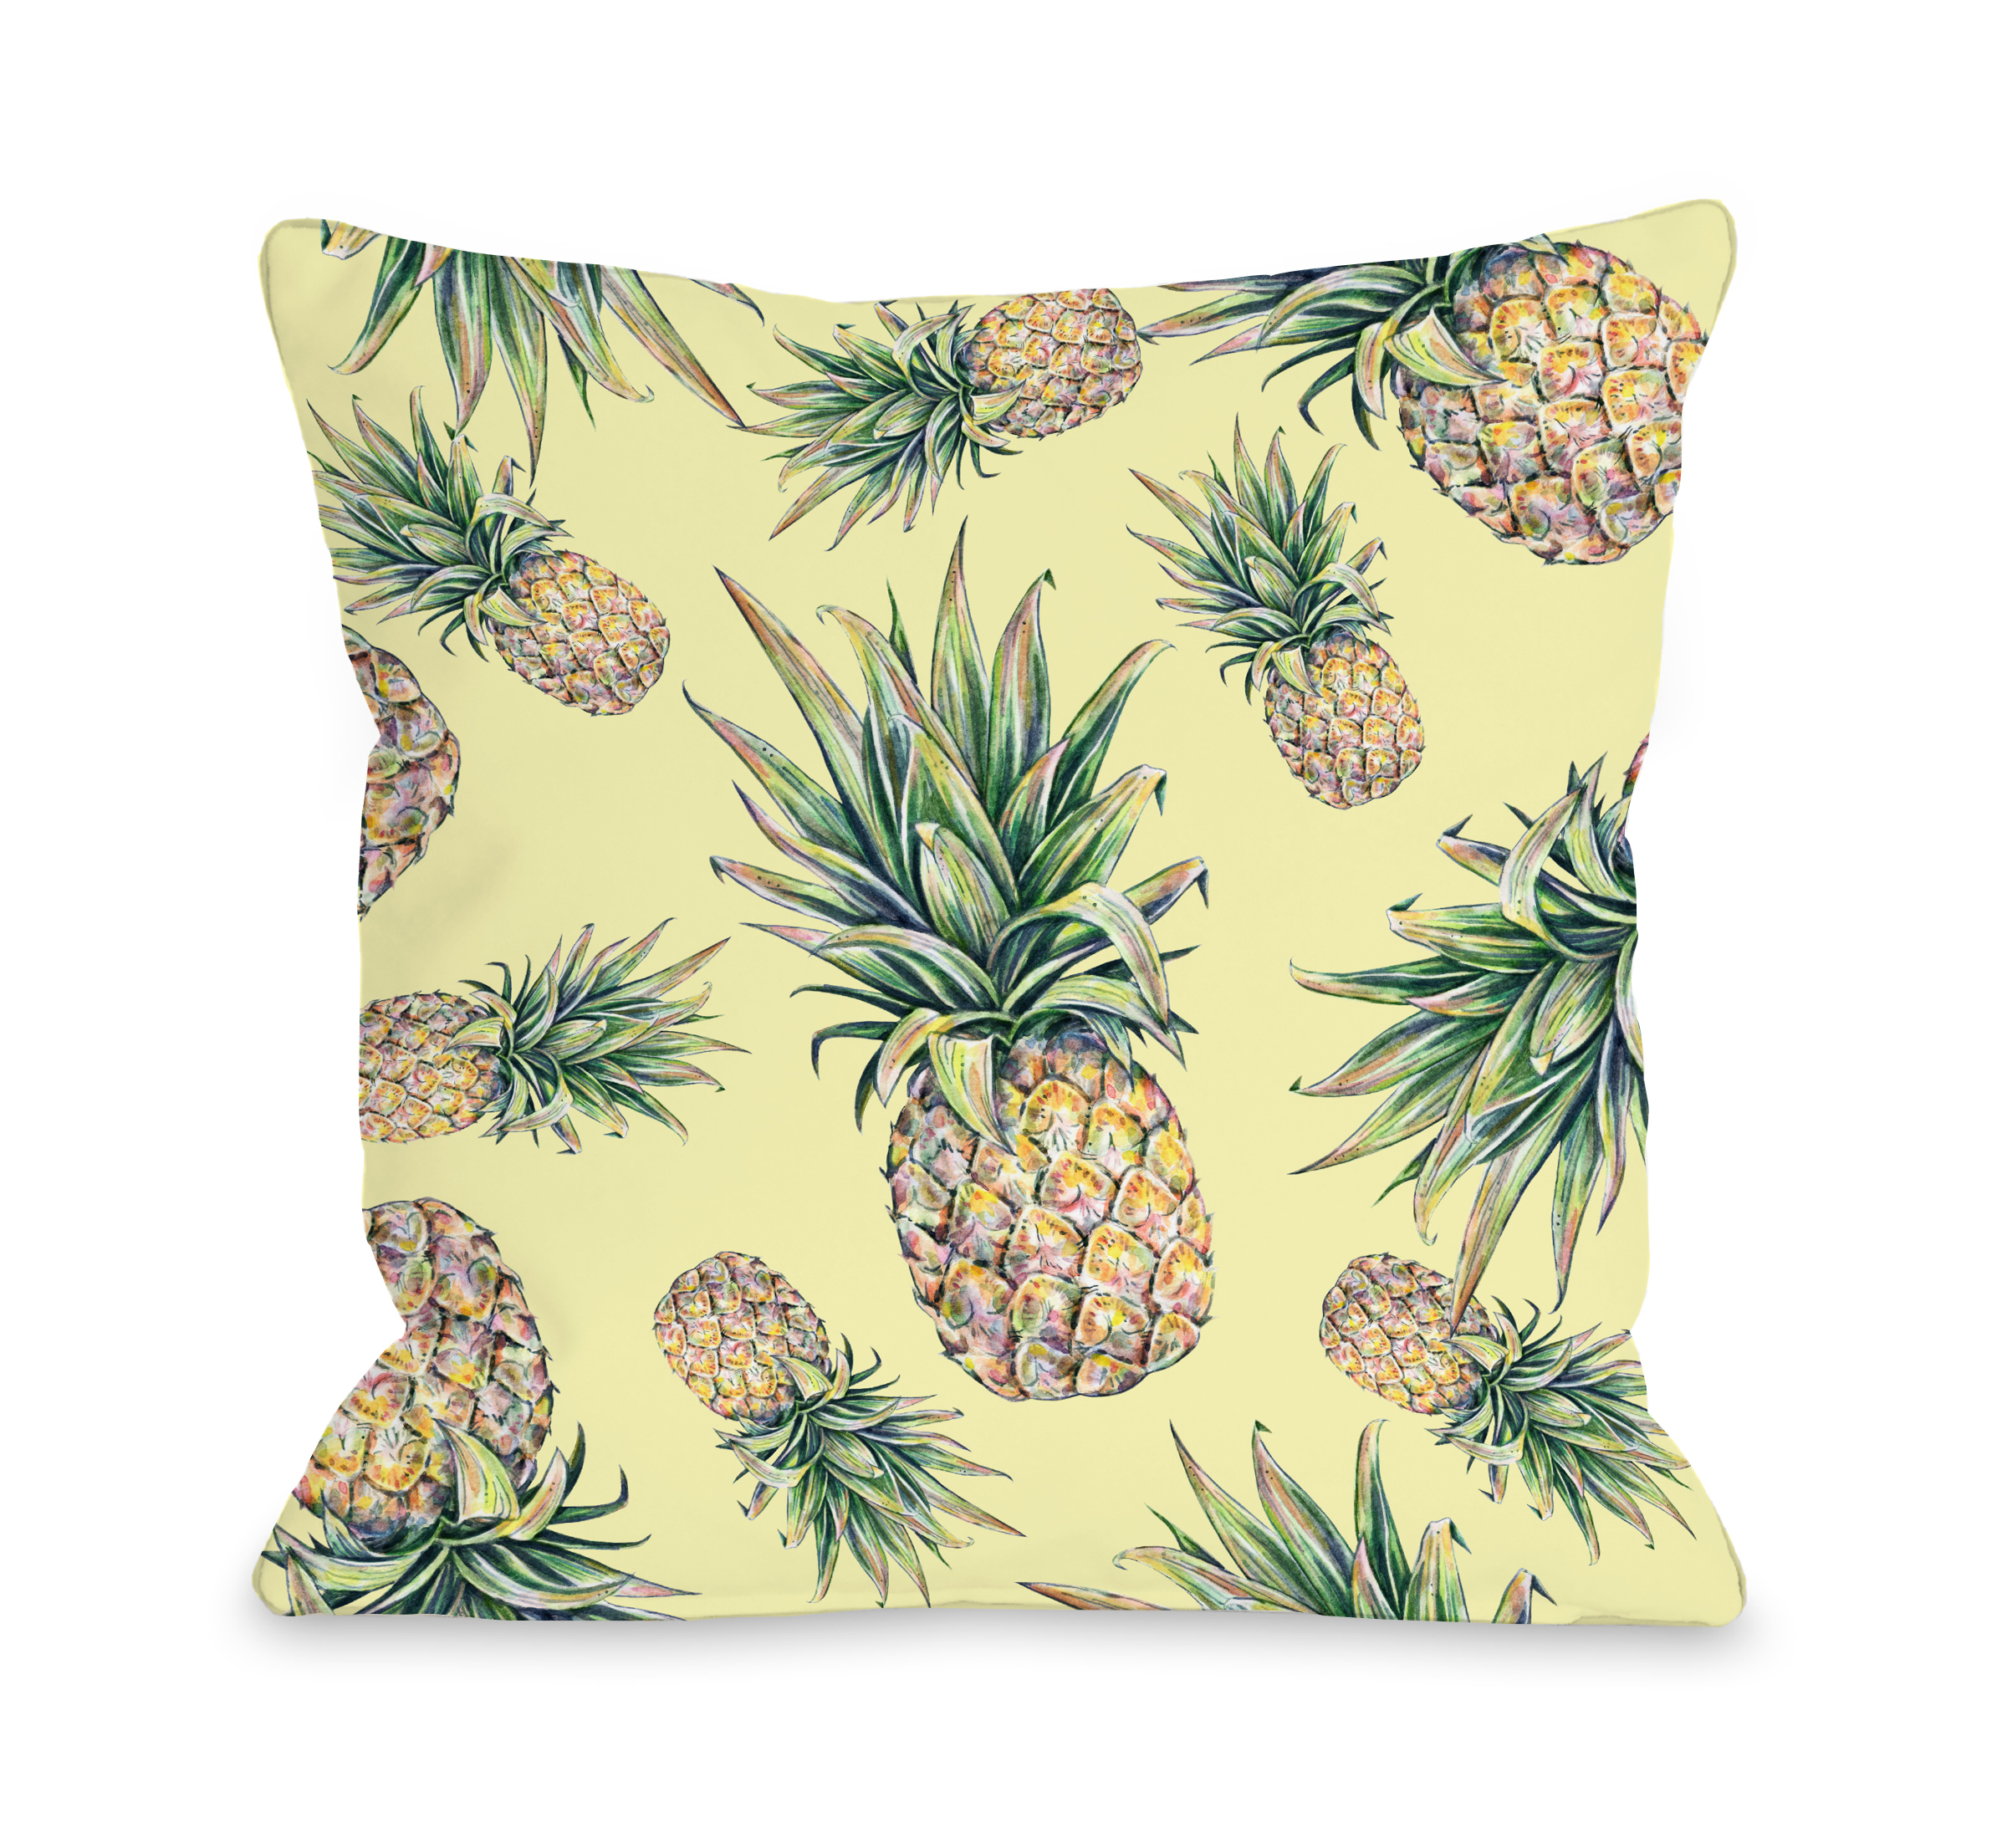 Summer Pineapple Print - Multi 16x16 Pillow by OBC